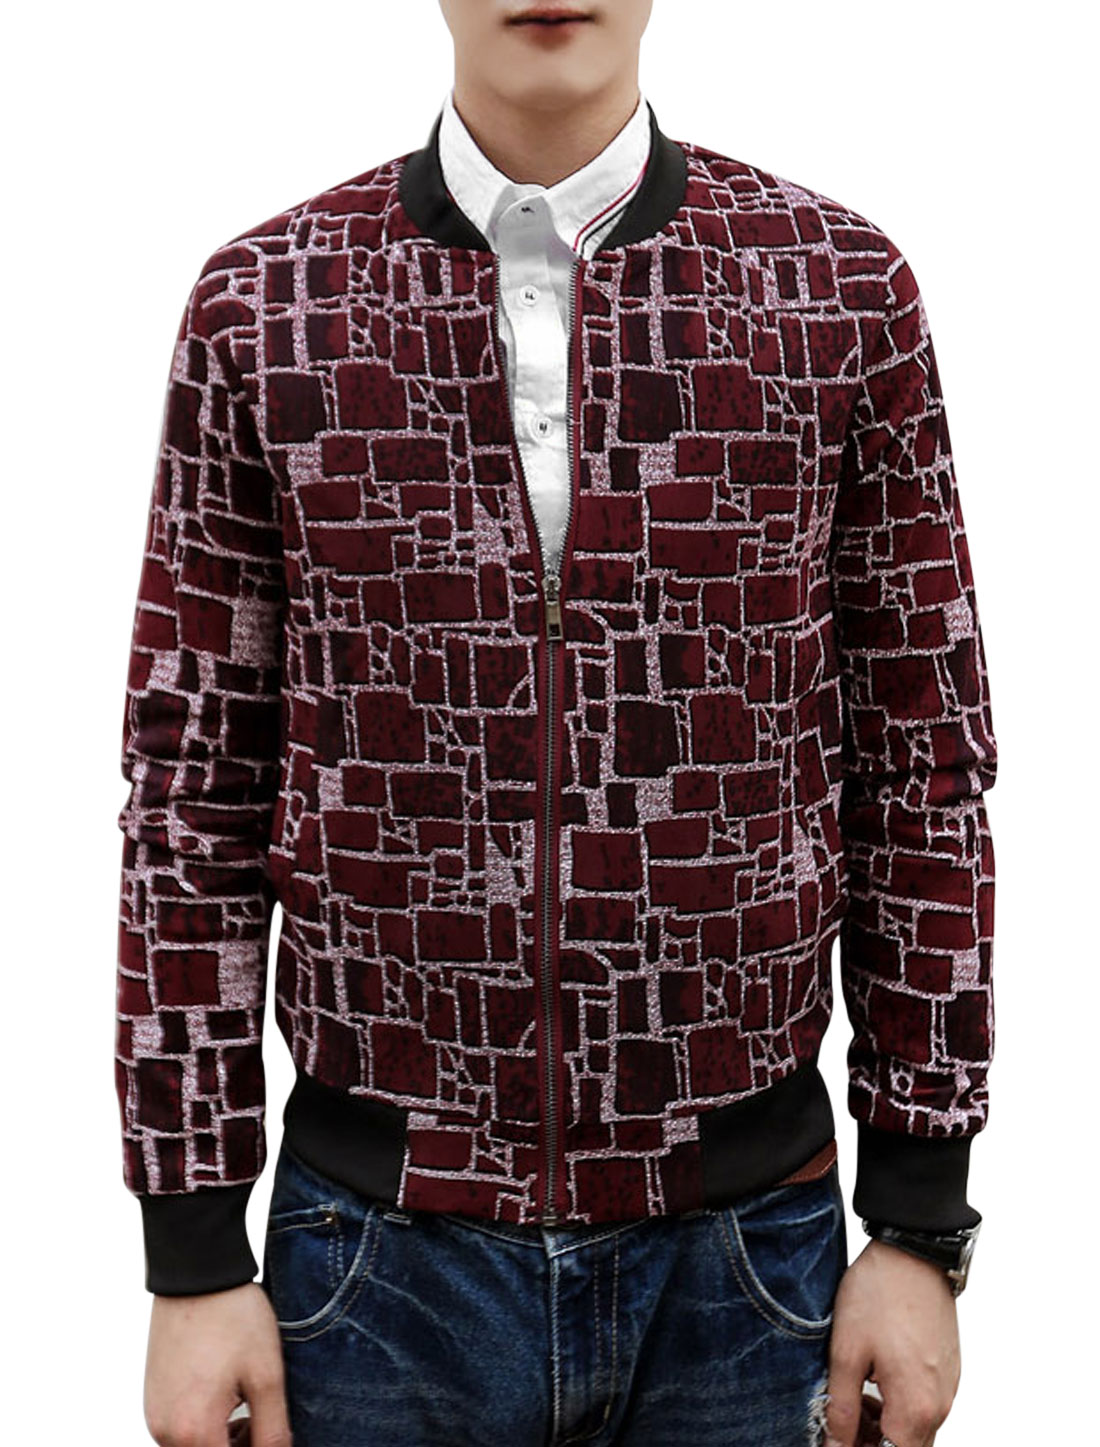 Men Geometric Prints Long Sleeves Zip Up Baseball Jacket Burgundy S